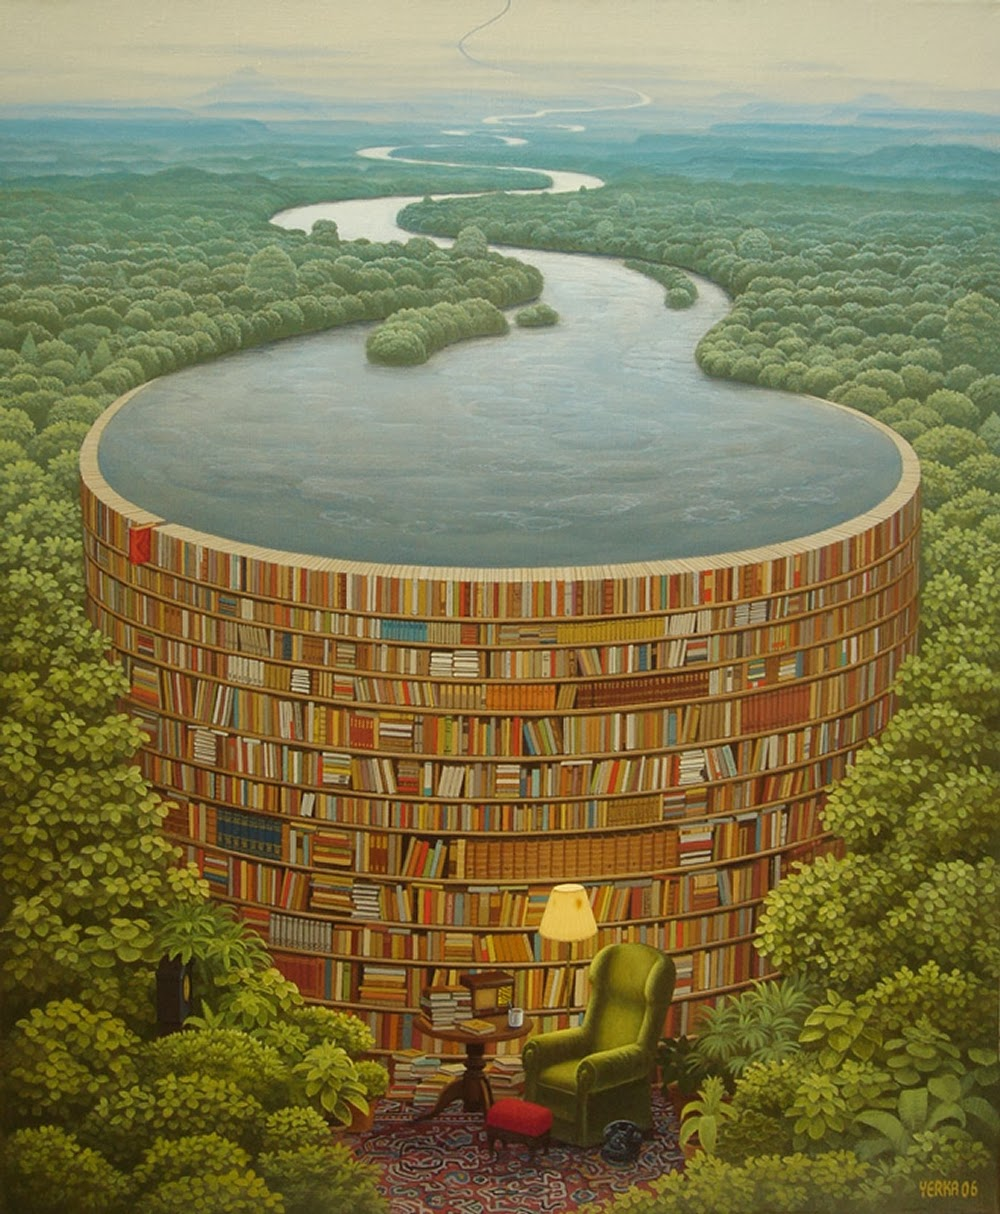 07-Jacek-Yerka-Surreal-Dream-Paintings-www-designstack-co